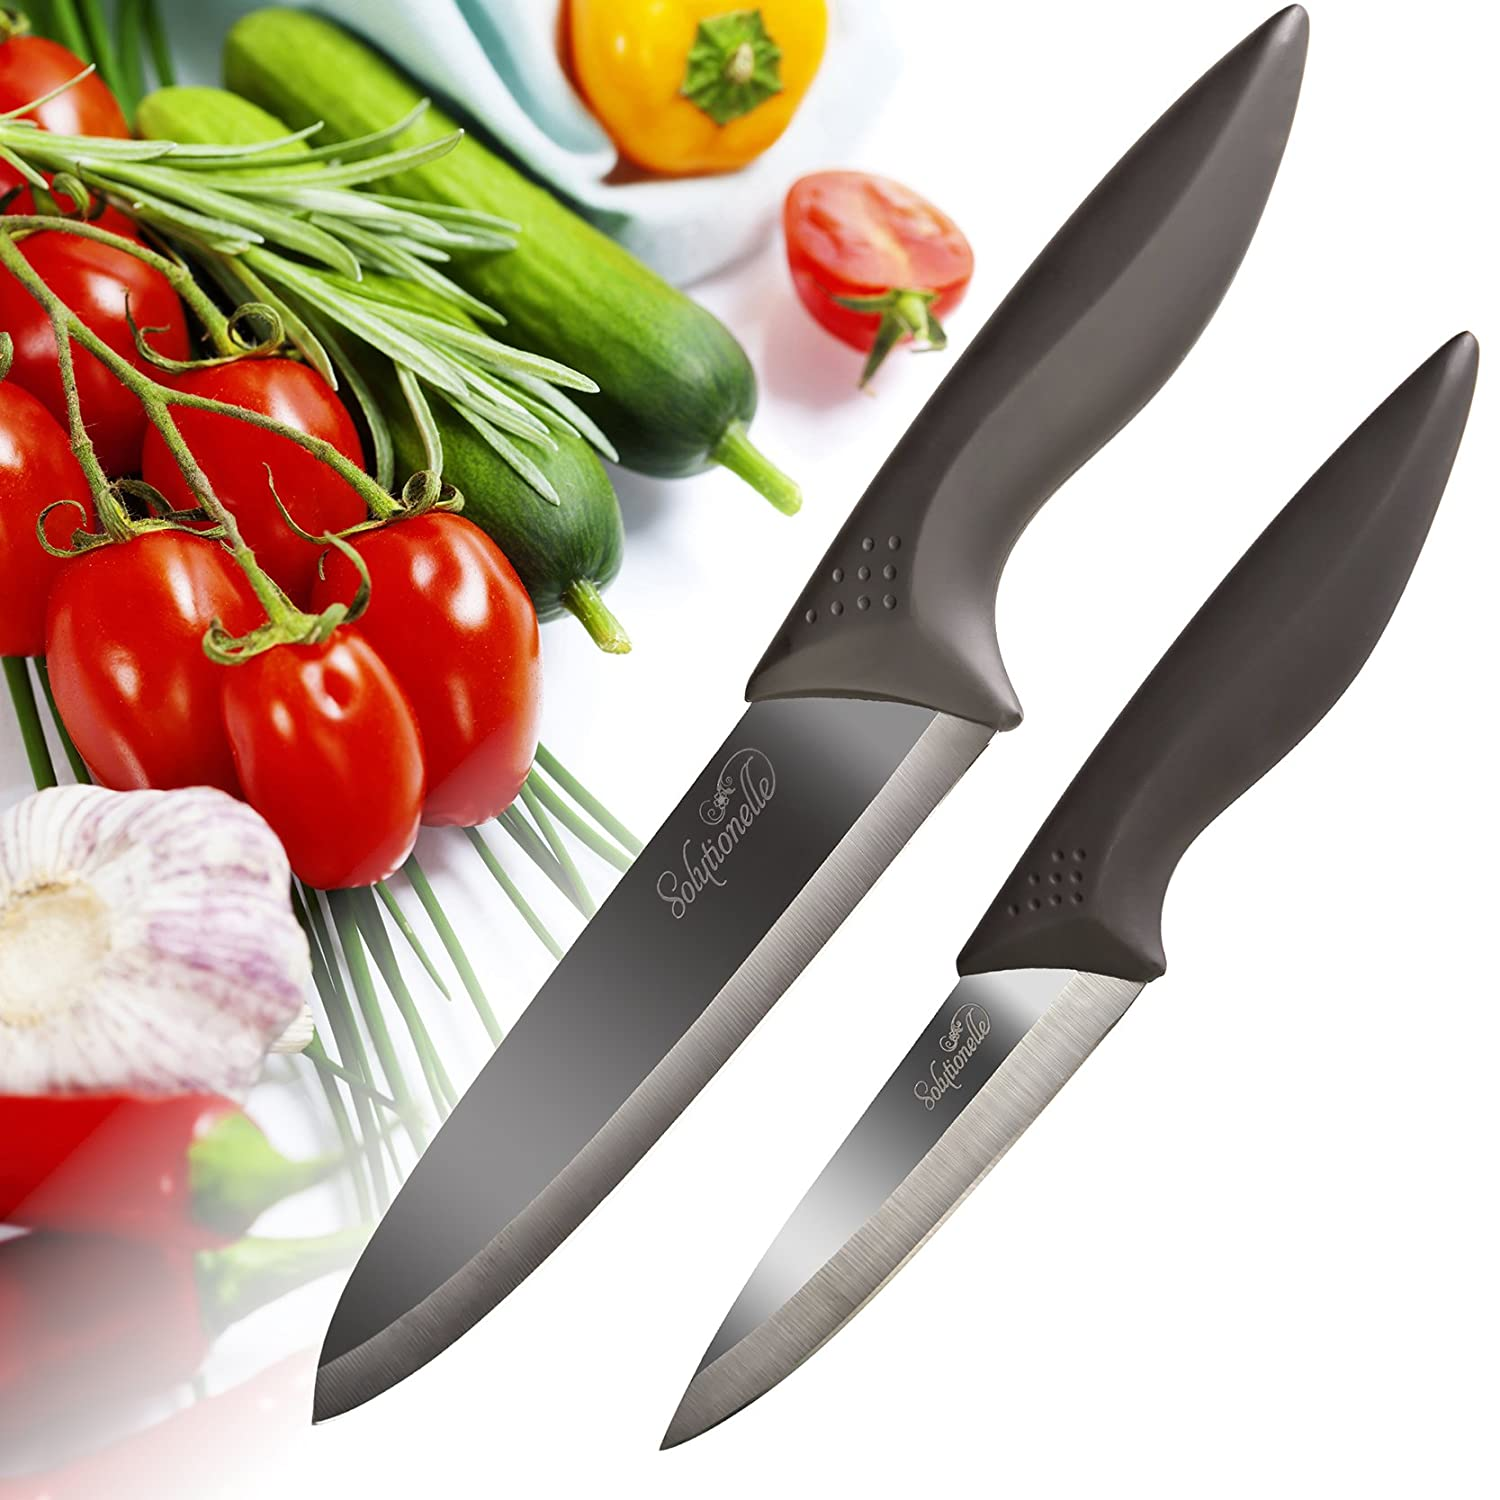 Ceramic Knife Gift Set, 2pc + Sheaths - Chef And Paring Knives With Black Mirror Finish Blades